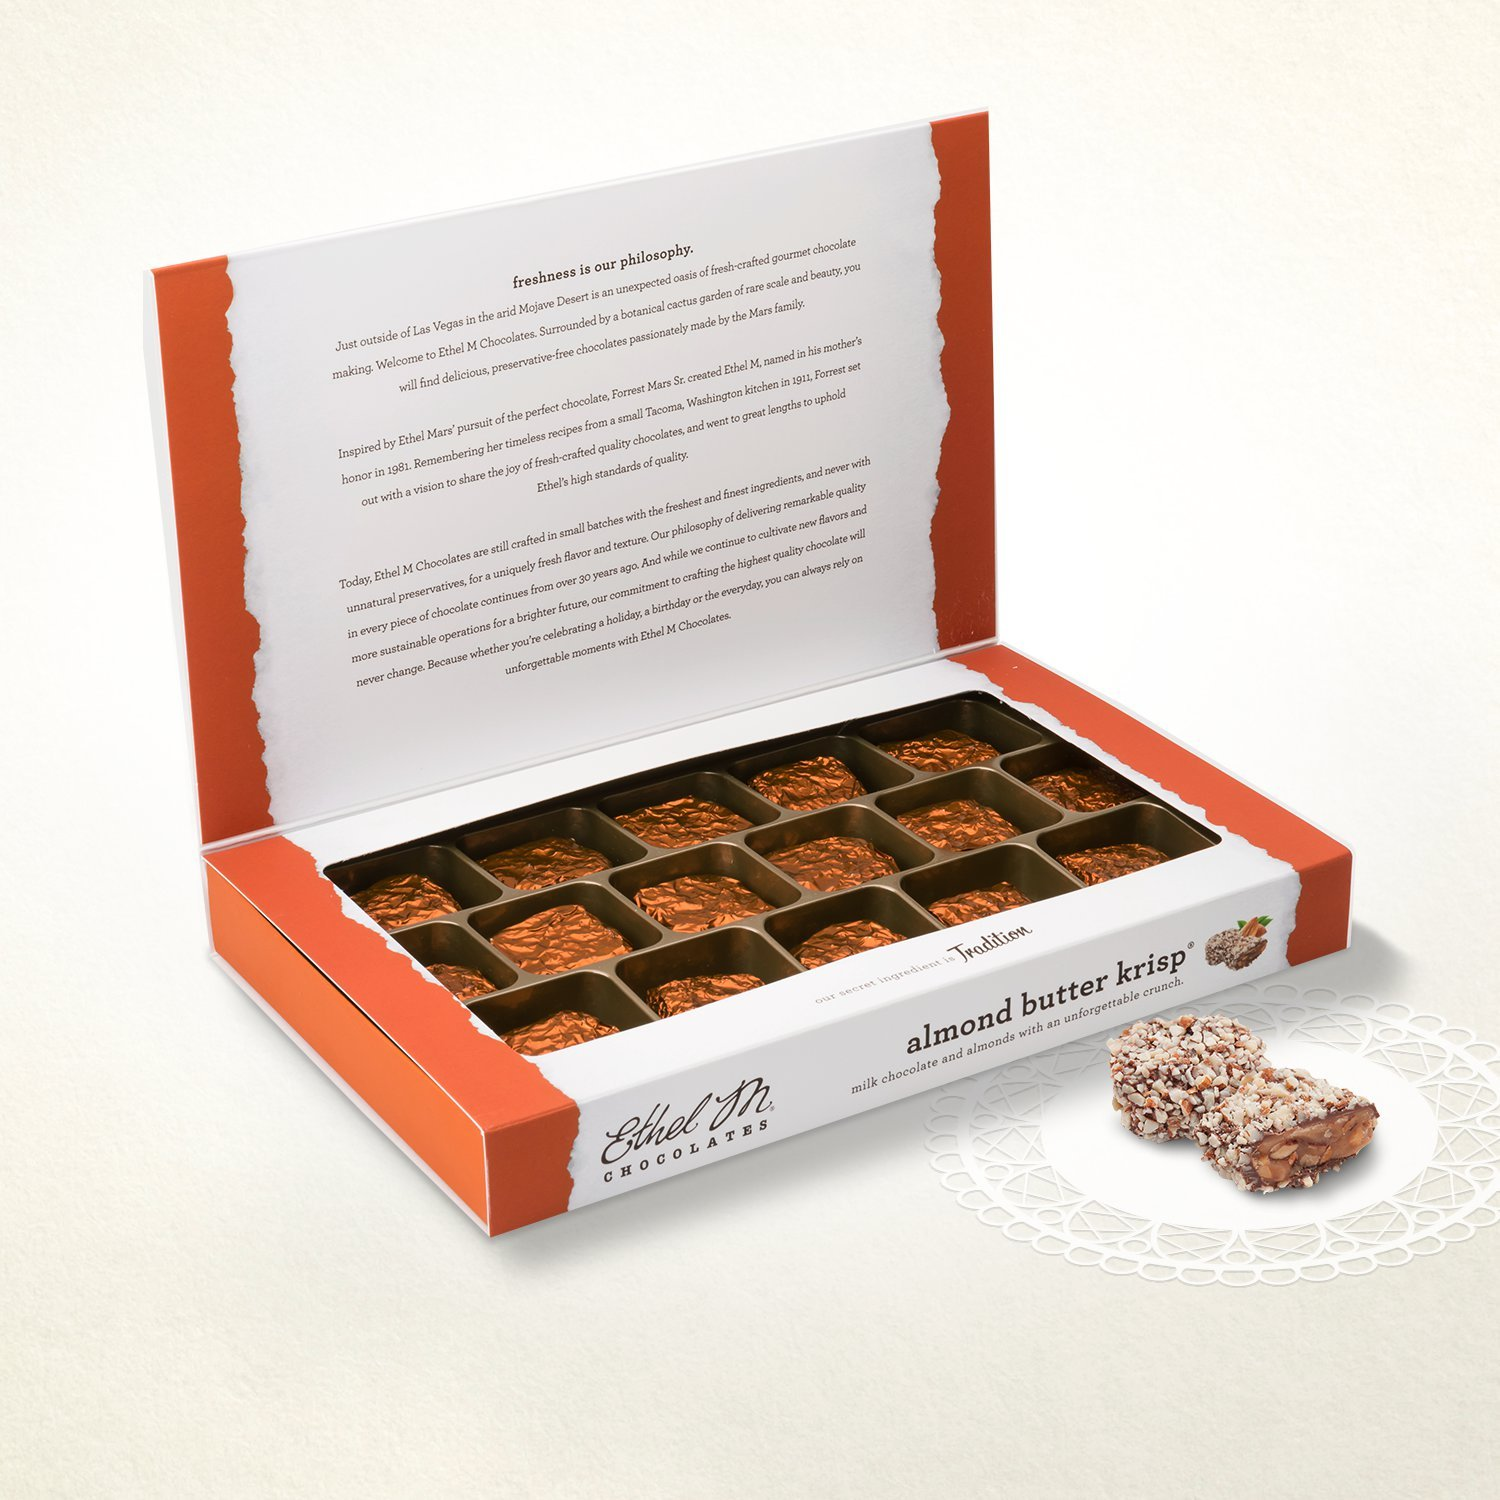 Amazon.com : ETHEL M Chocolates Almond Butter Krisp Candy Gift Box ...